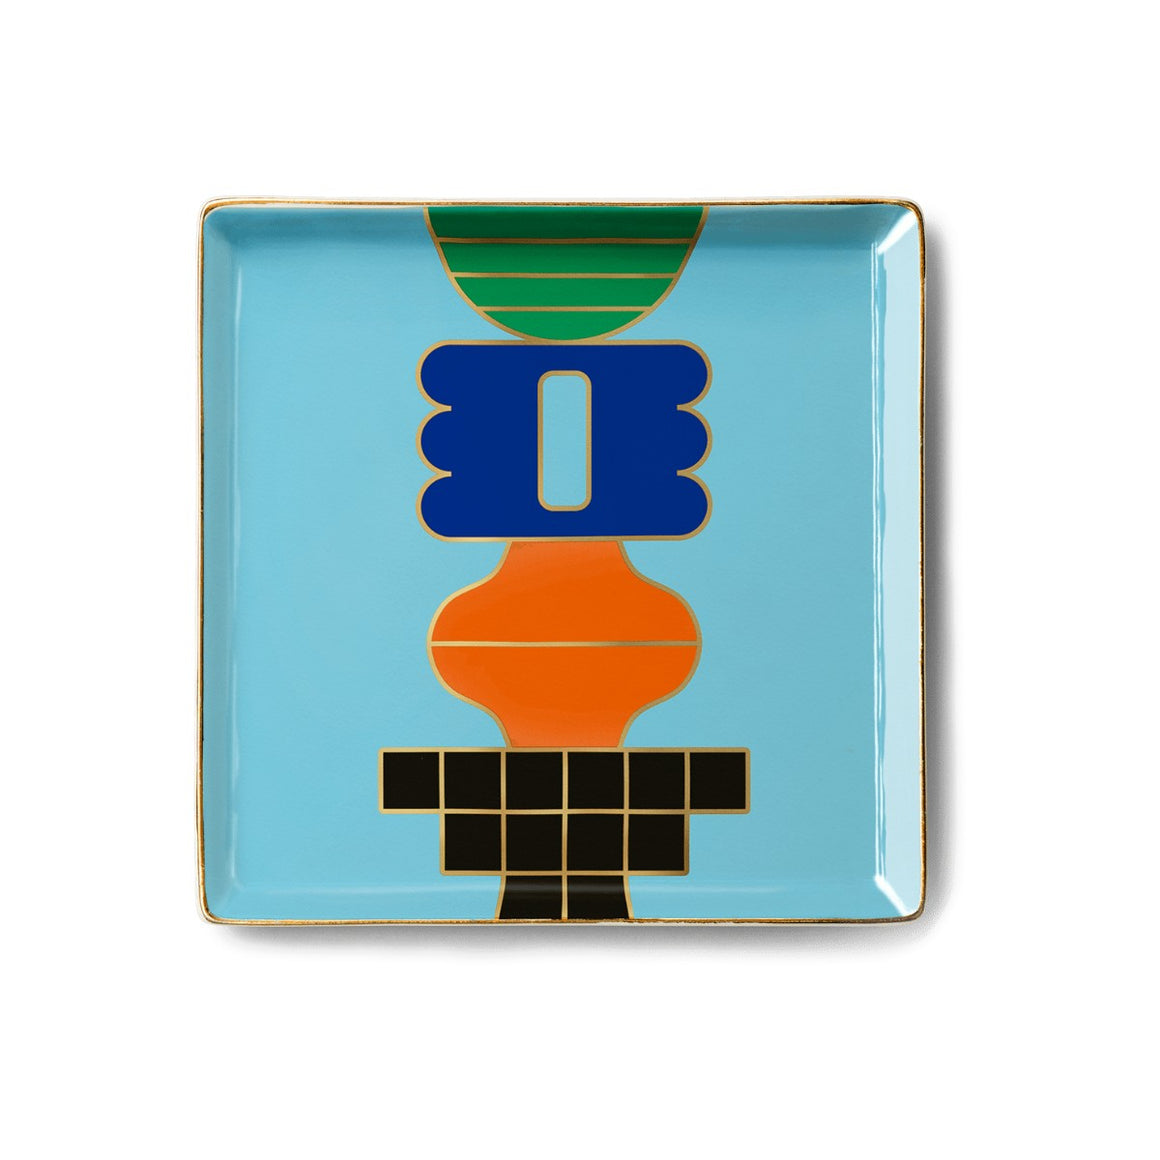 A square ceramic tray with a geometric abstract design. Linework in gold and glazed with green. blue, orange, black and light blue